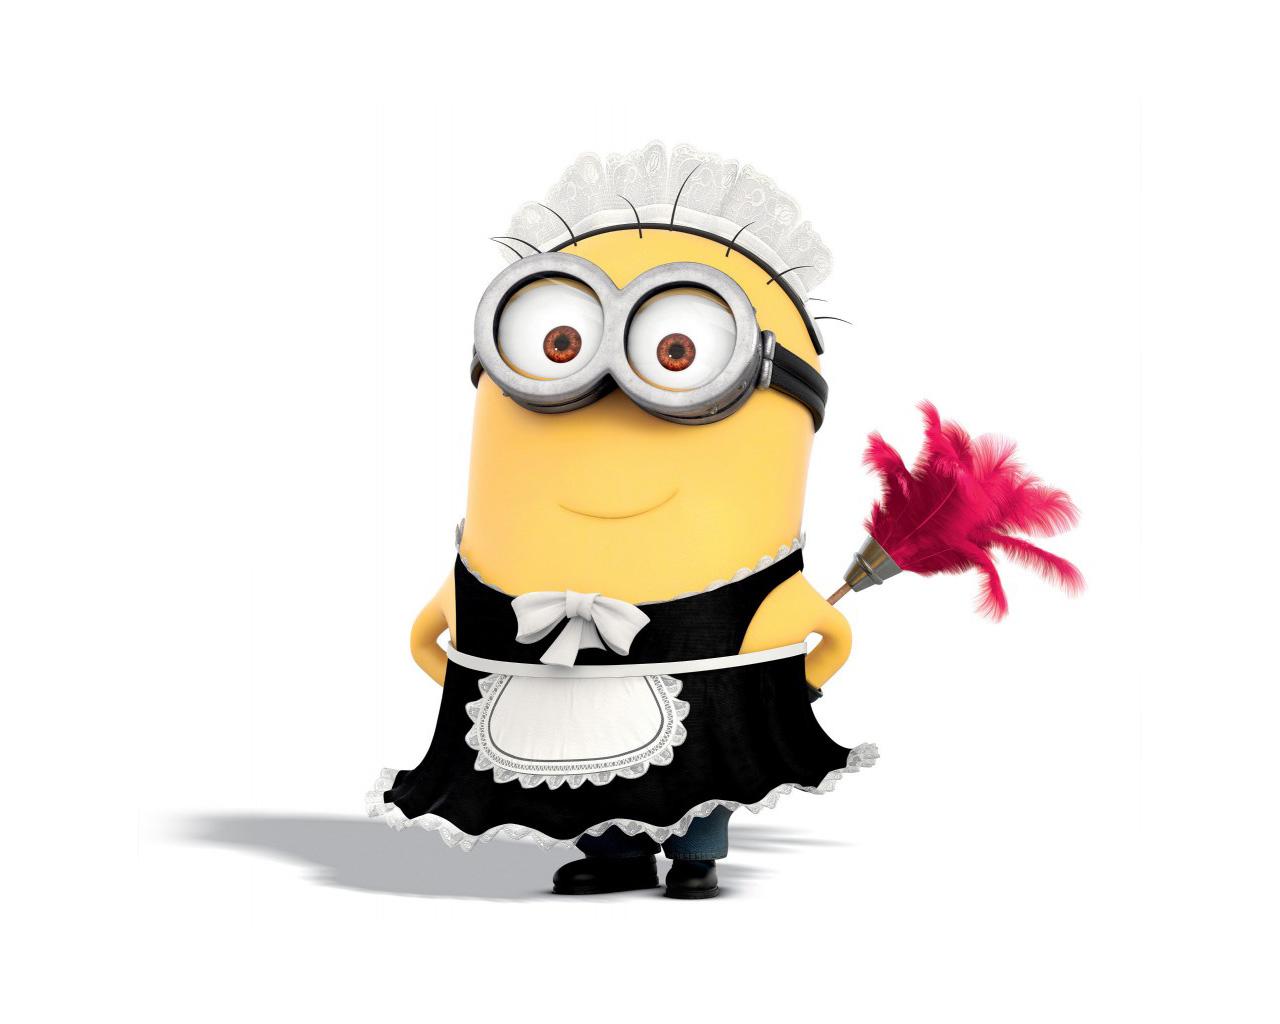 Phil Cute Minion Image A Cute Collection Of Despicable Me 2 Minions